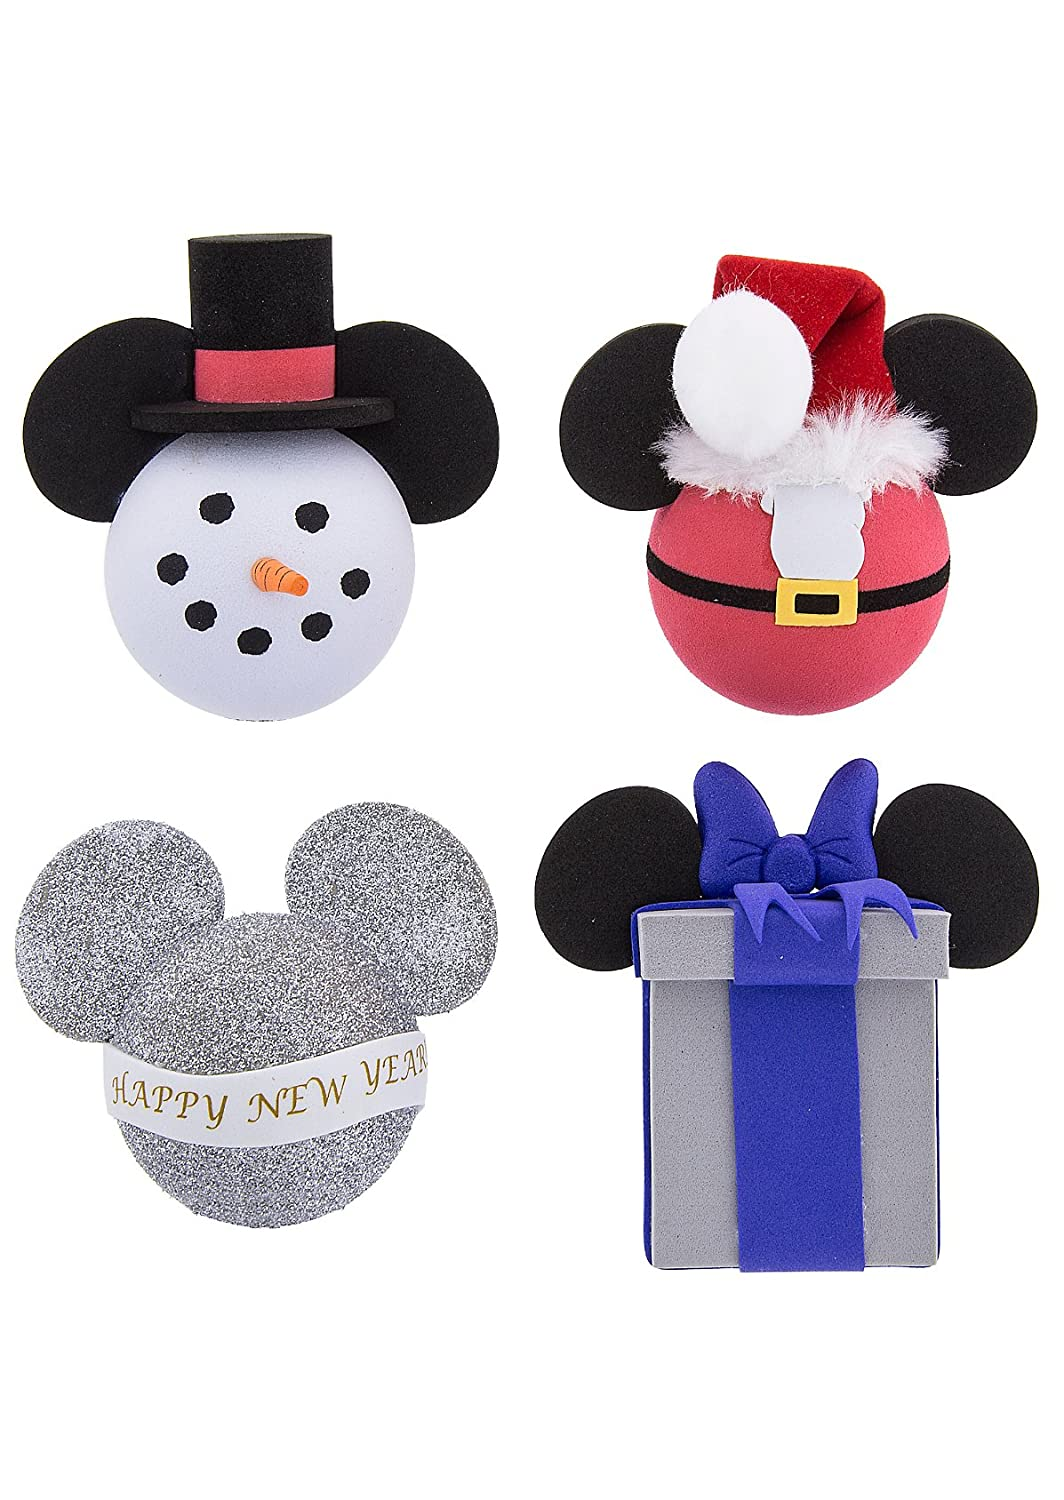 Disney Parks Christmas New Year Holiday Car Antenna Pencil Topper Set of 4 Themepark Essentials